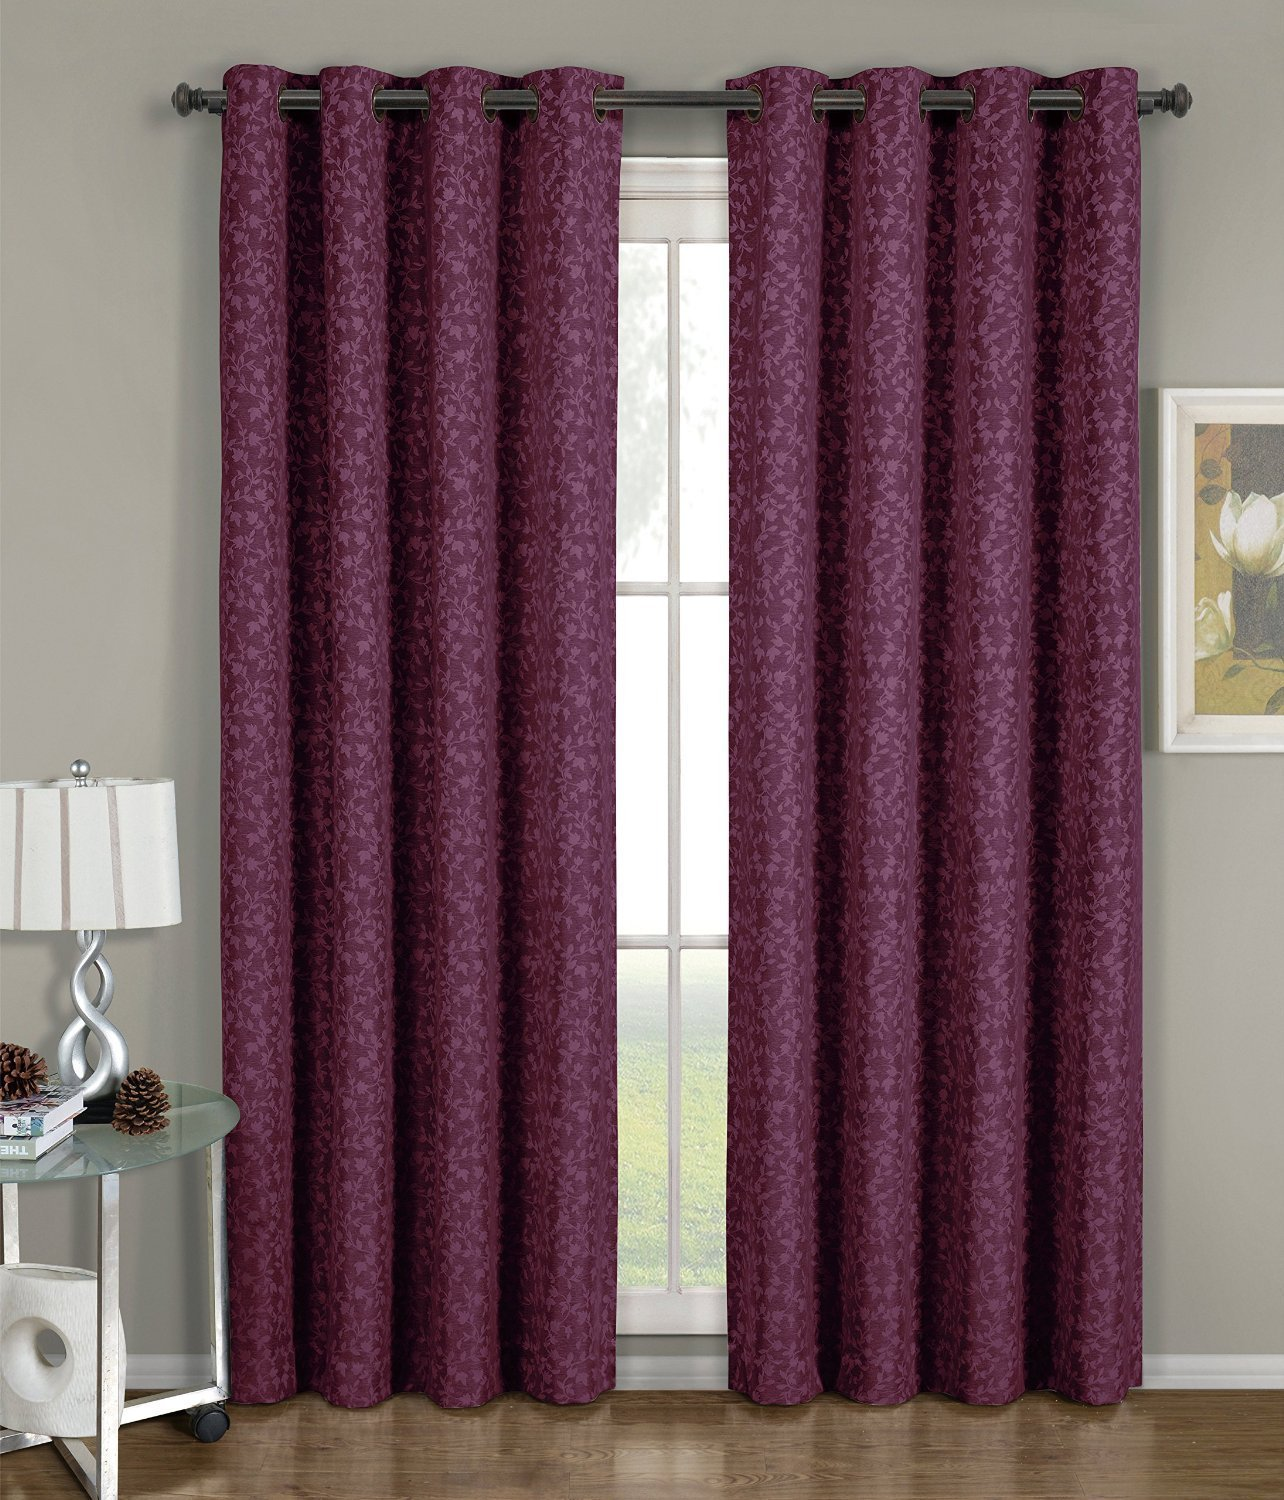 Fiorela - Burgundy - Jacquard Grommet Window Curtain Panels